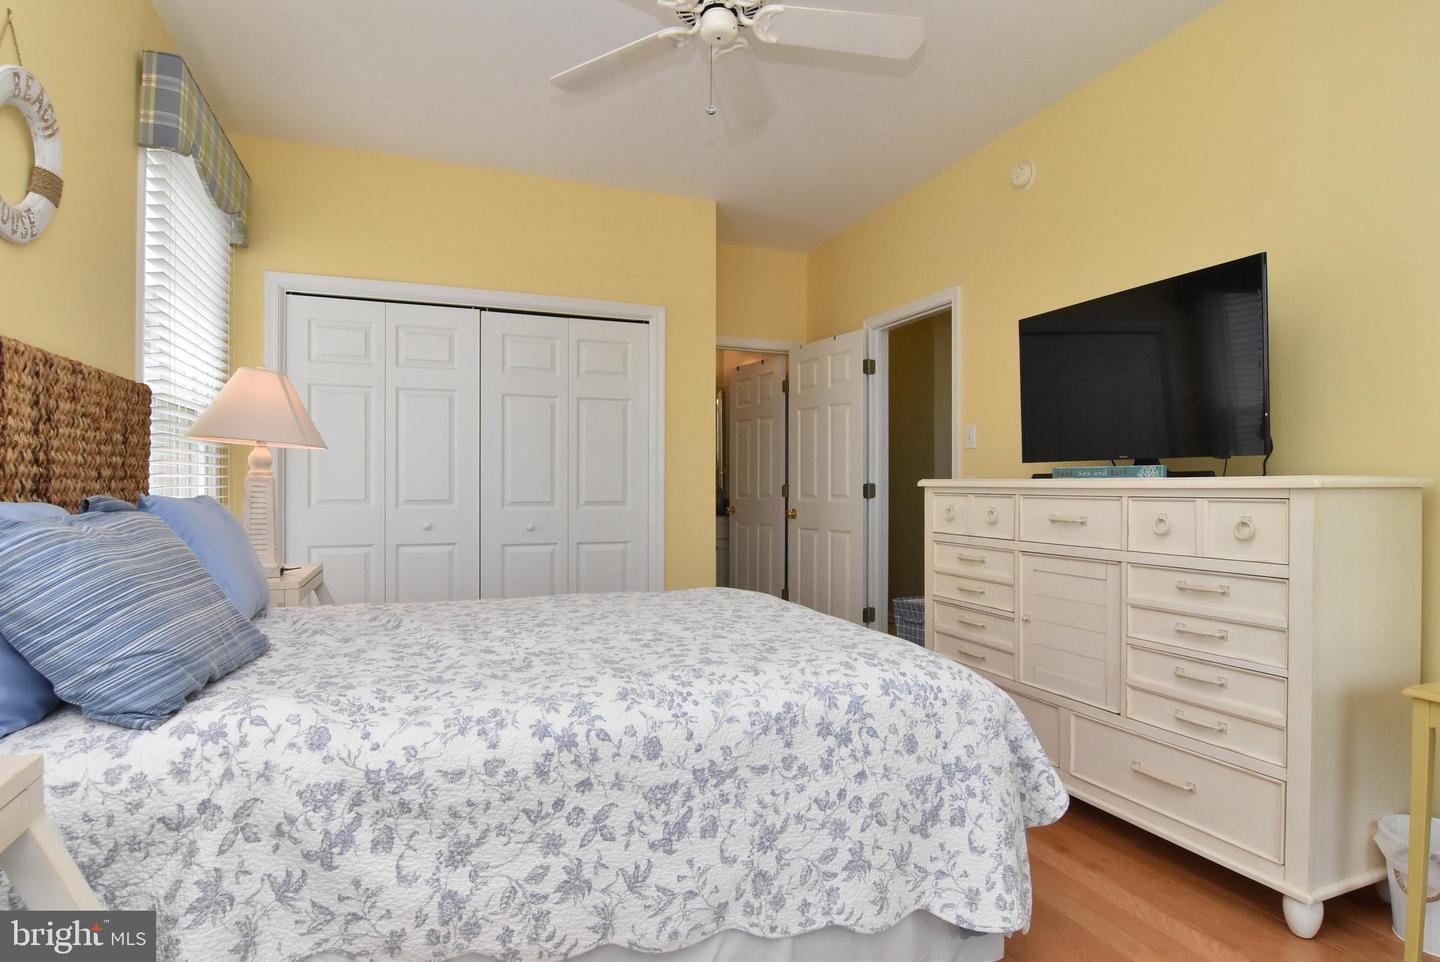 DESU141210-301754686062-2019-05-30-08-28-54 87 N Atlantic Ave | Bethany Beach, De Real Estate For Sale | MLS# Desu141210  - Suzanne Macnab